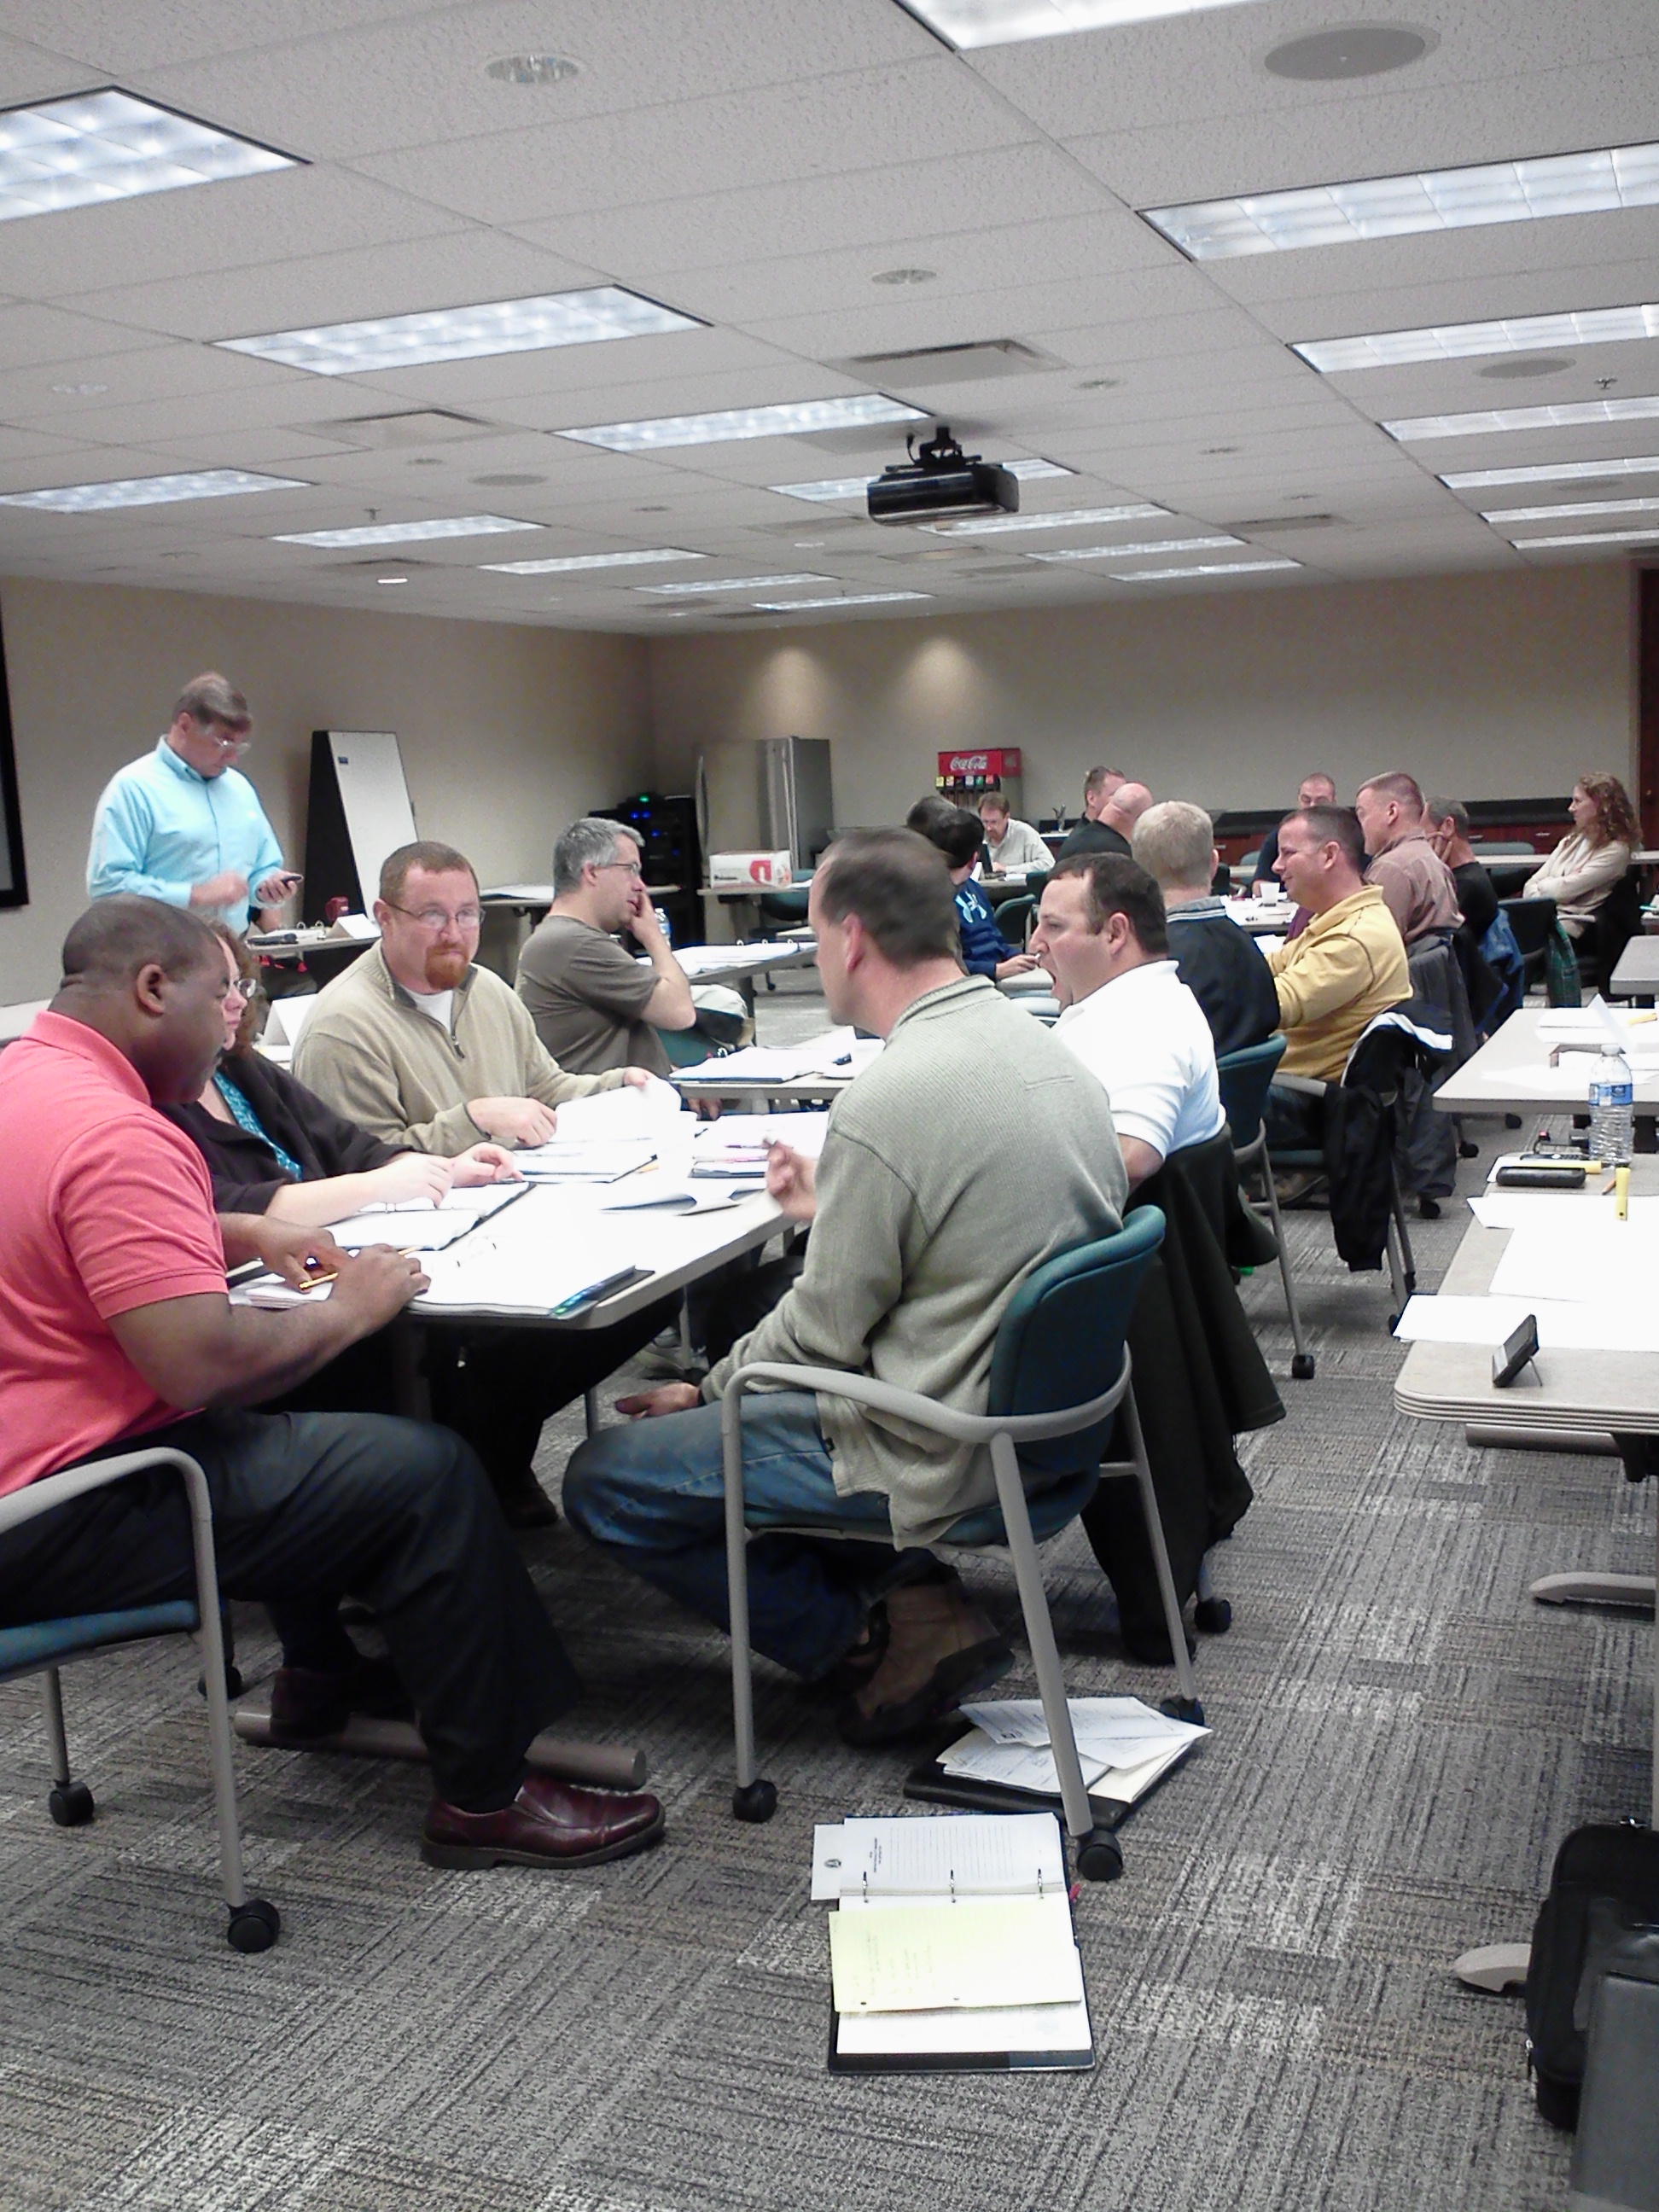 AGC, West Central Ohio Division Hosts CQM for Contractors Training, December 11-12, 2018